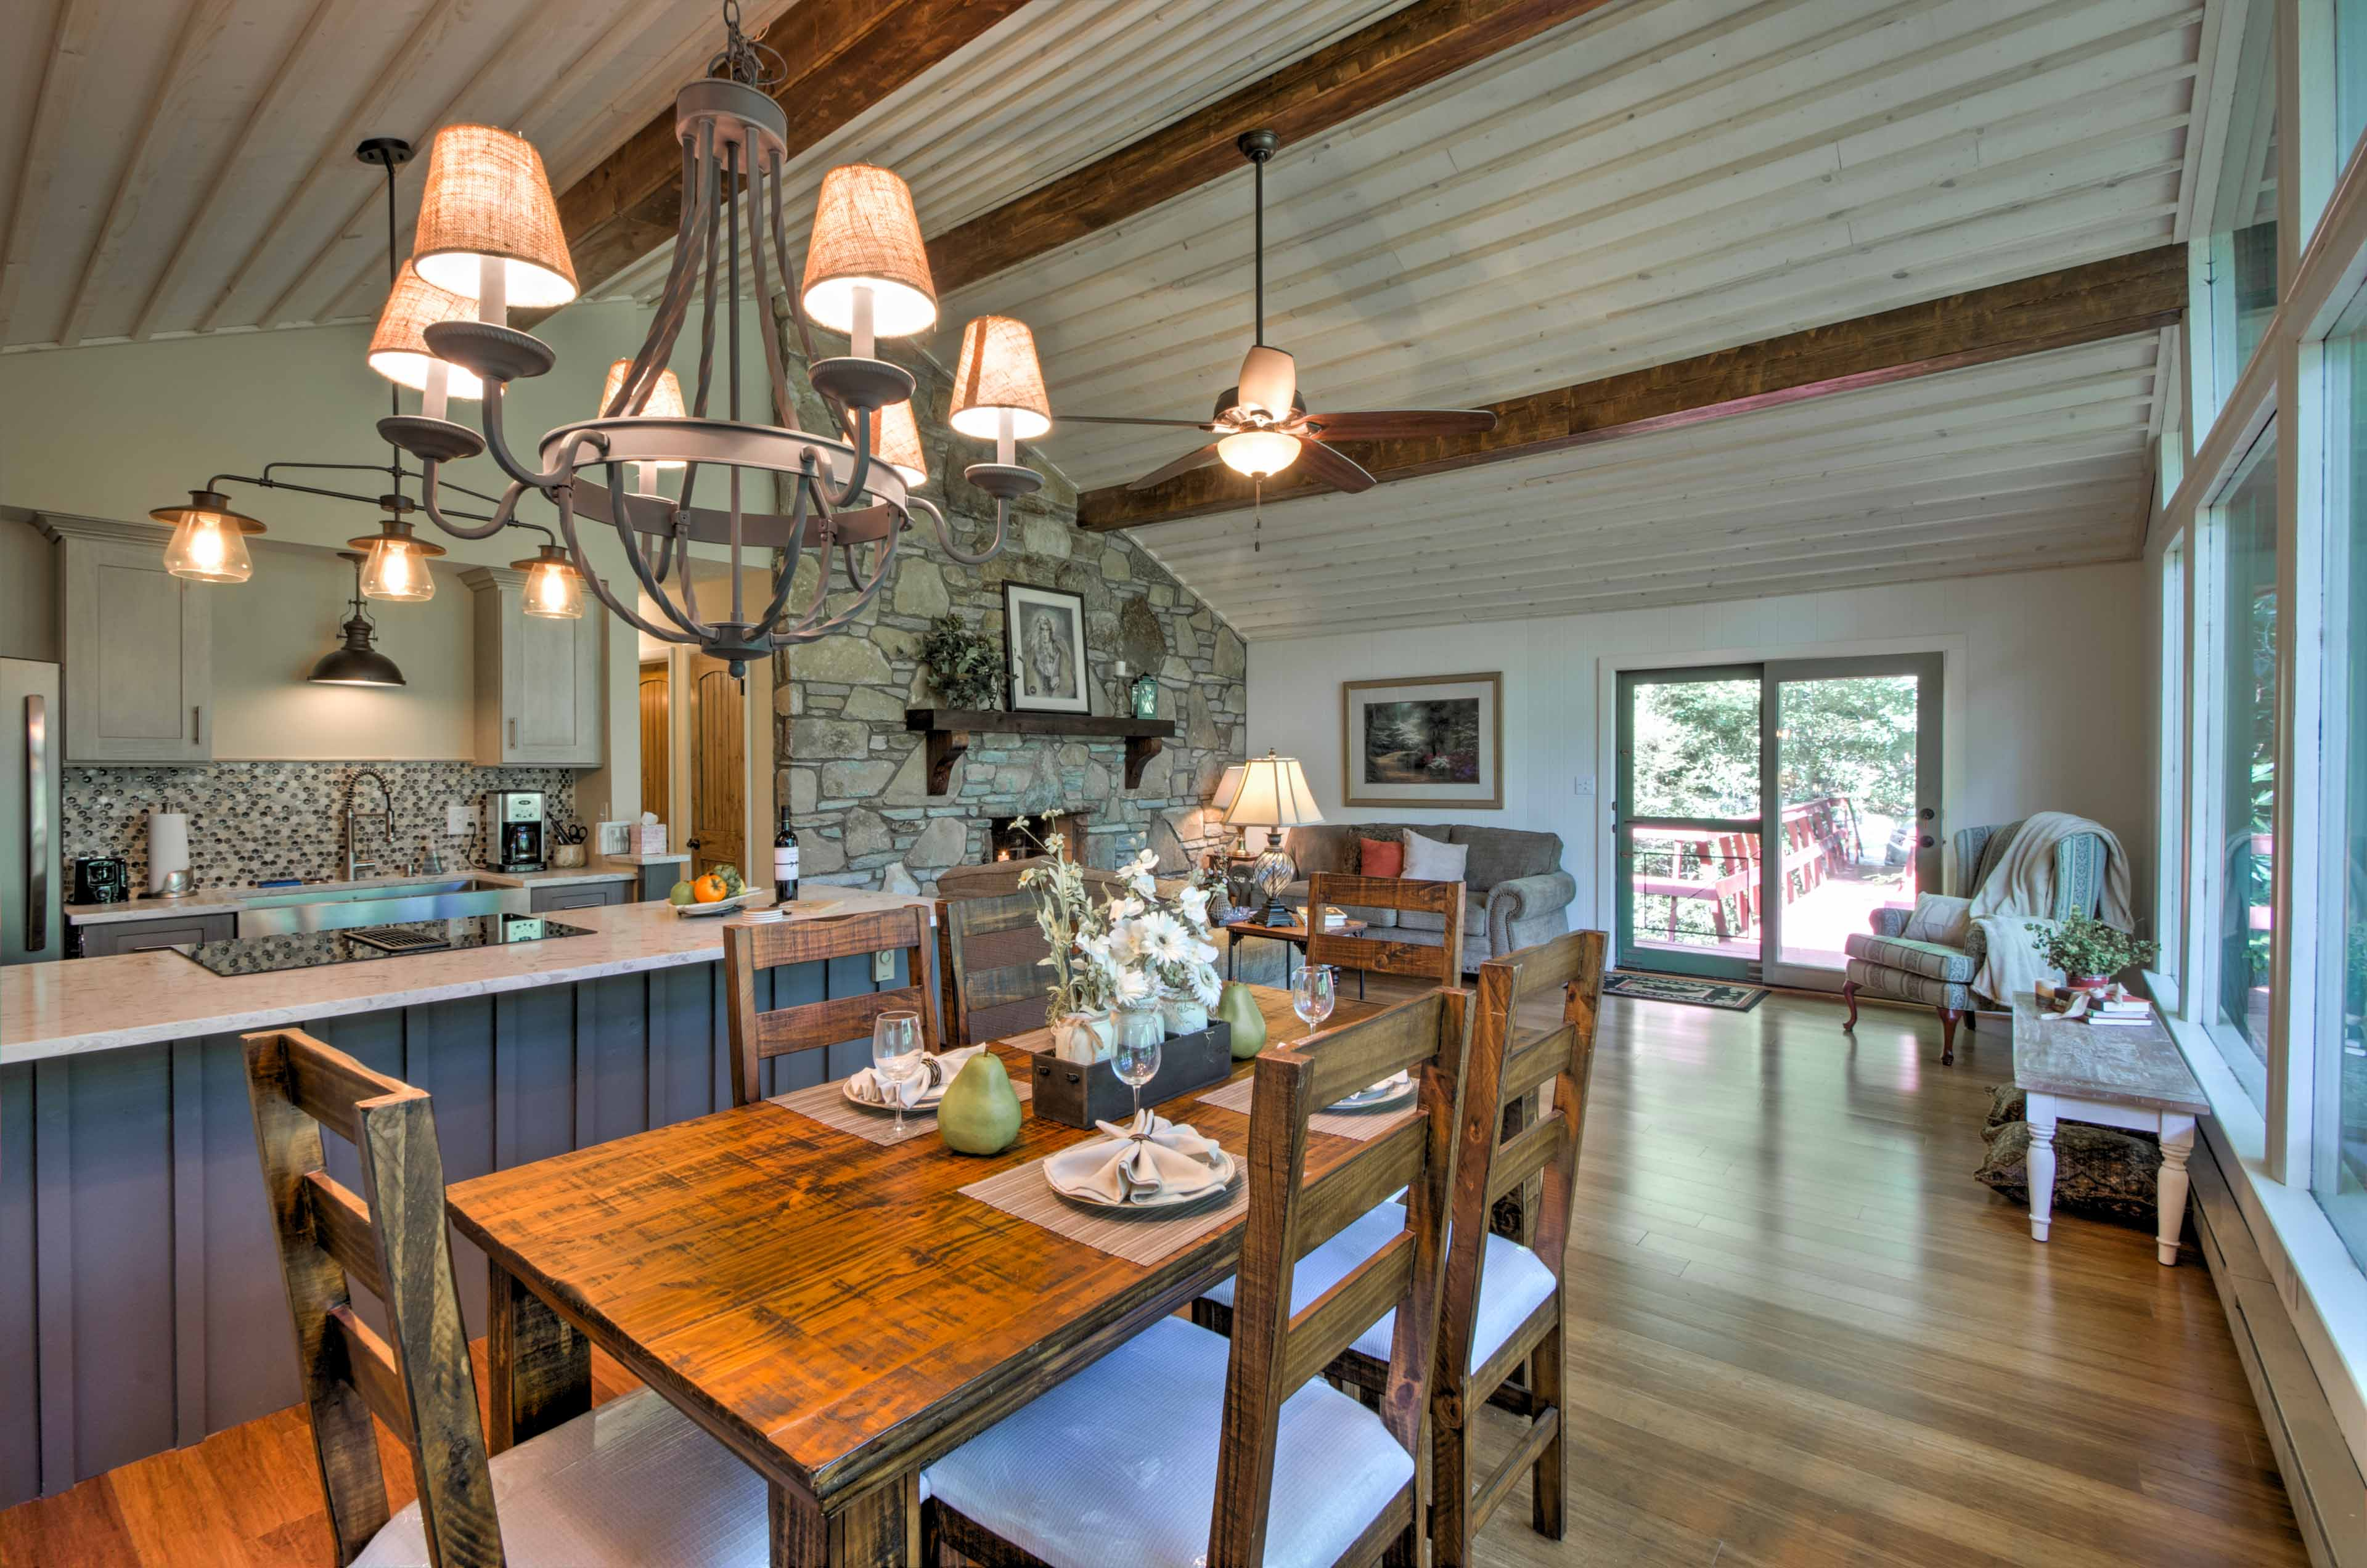 The home features an open floor plan and cathedral ceilings with exposed wood beams.